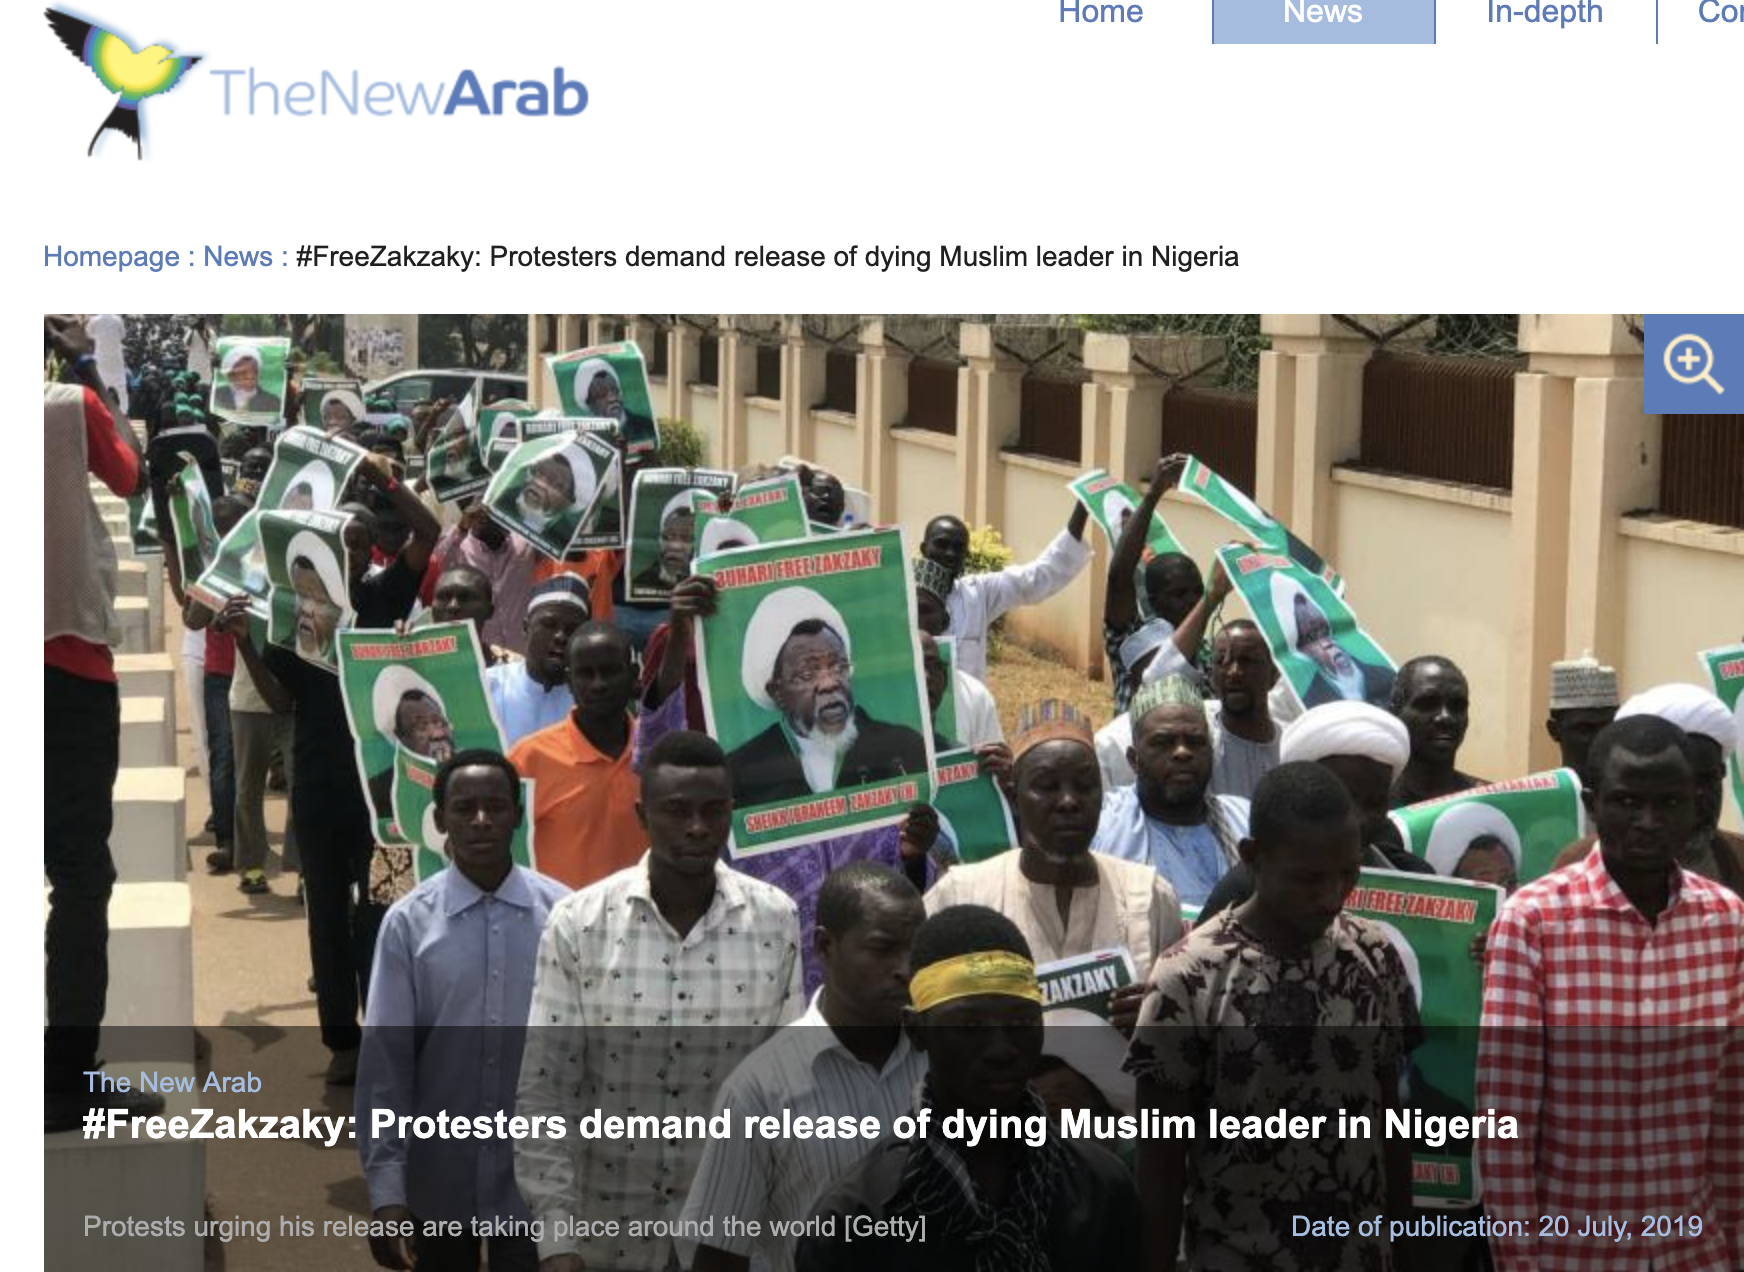 "READ THE FULL ARTICLE - ""Hundreds of demonstrators are protesting across major cities around the world urging the immediate release of a prominent Shia Muslim leader in Nigeria who is"